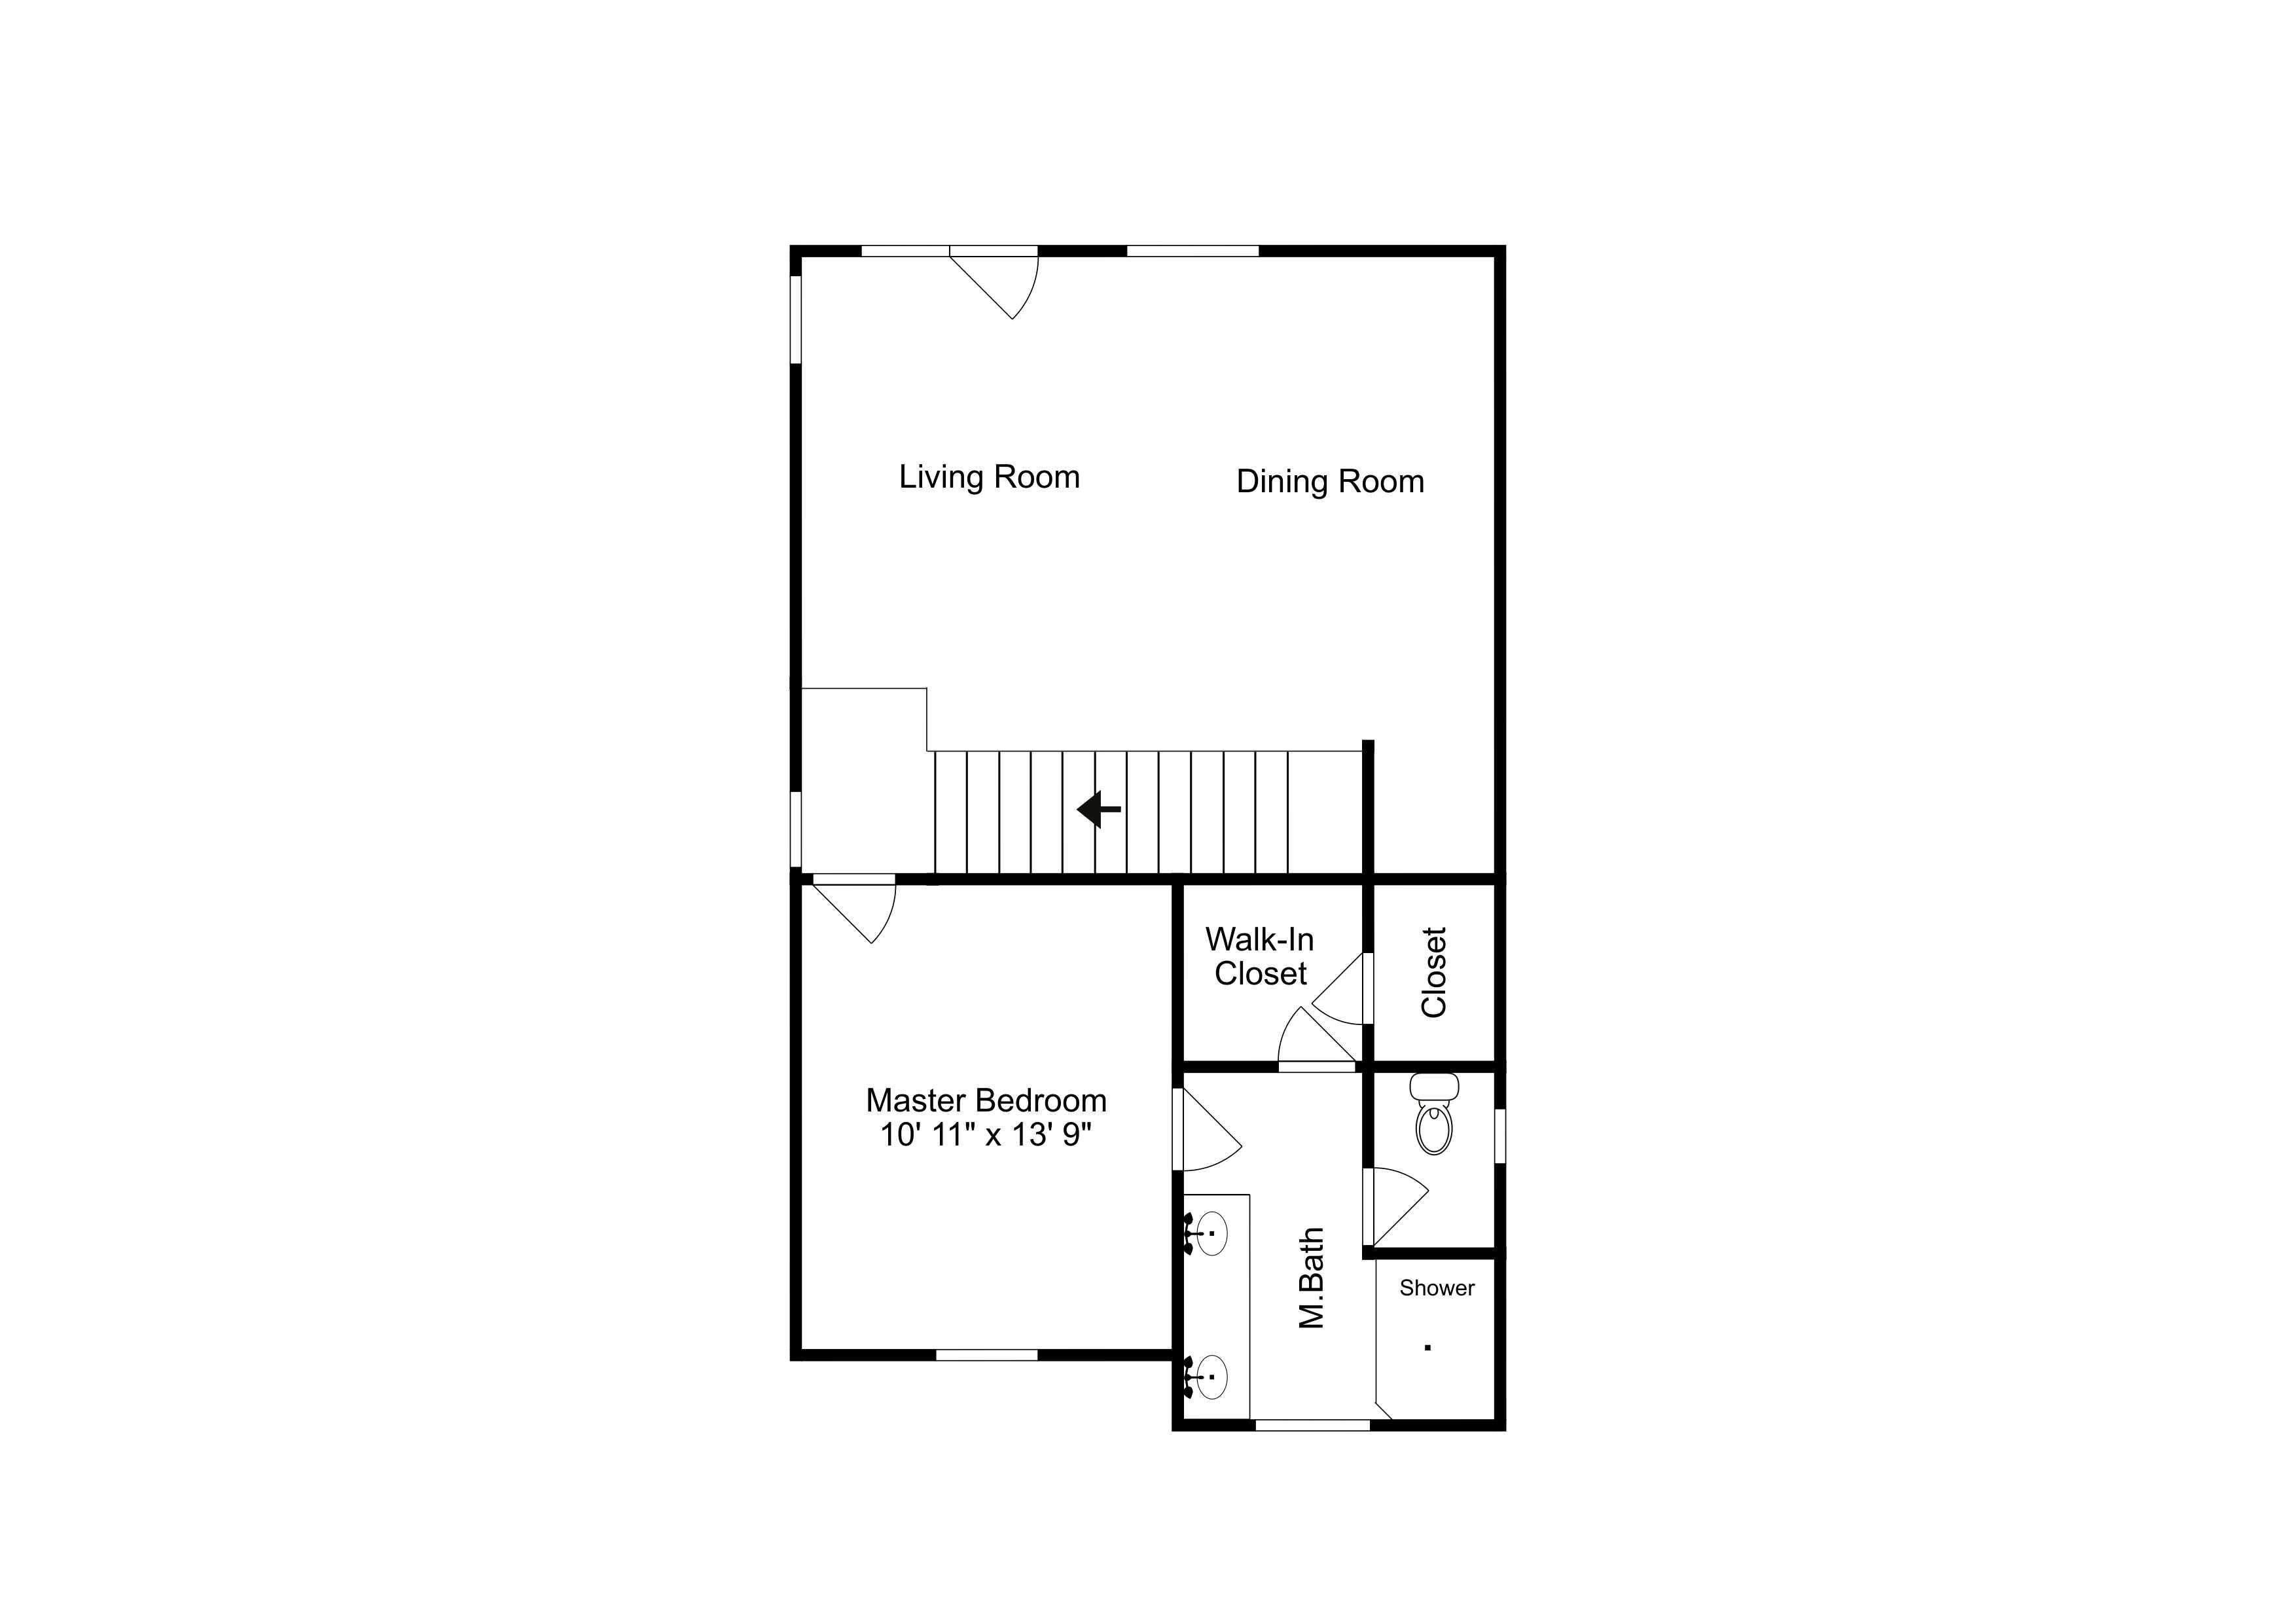 This second floor layout is an approximation and may not include the most recent information.